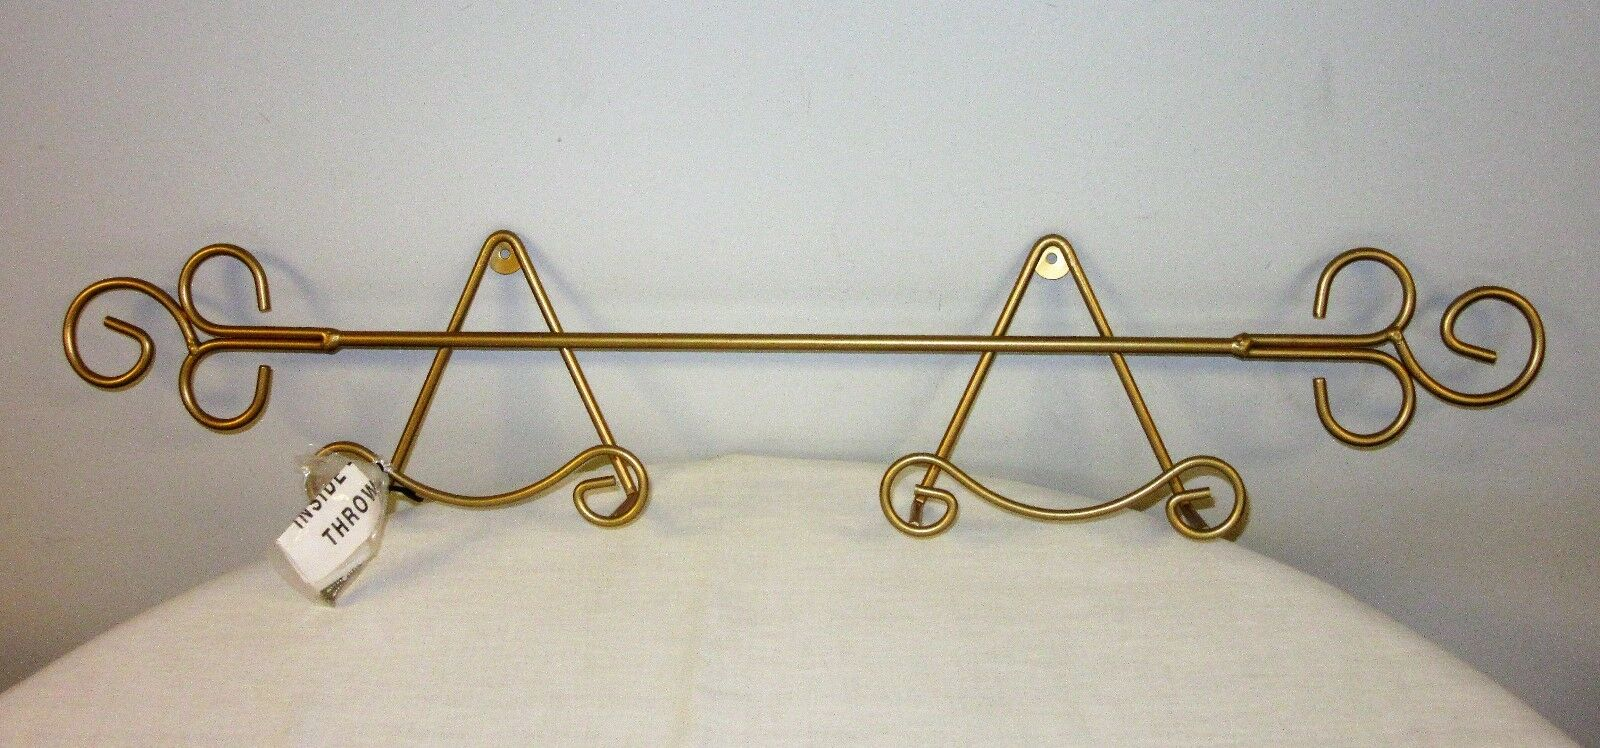 Horizontal Decorative Plate Rack Gold Tone Wall Mounted 29 12 With